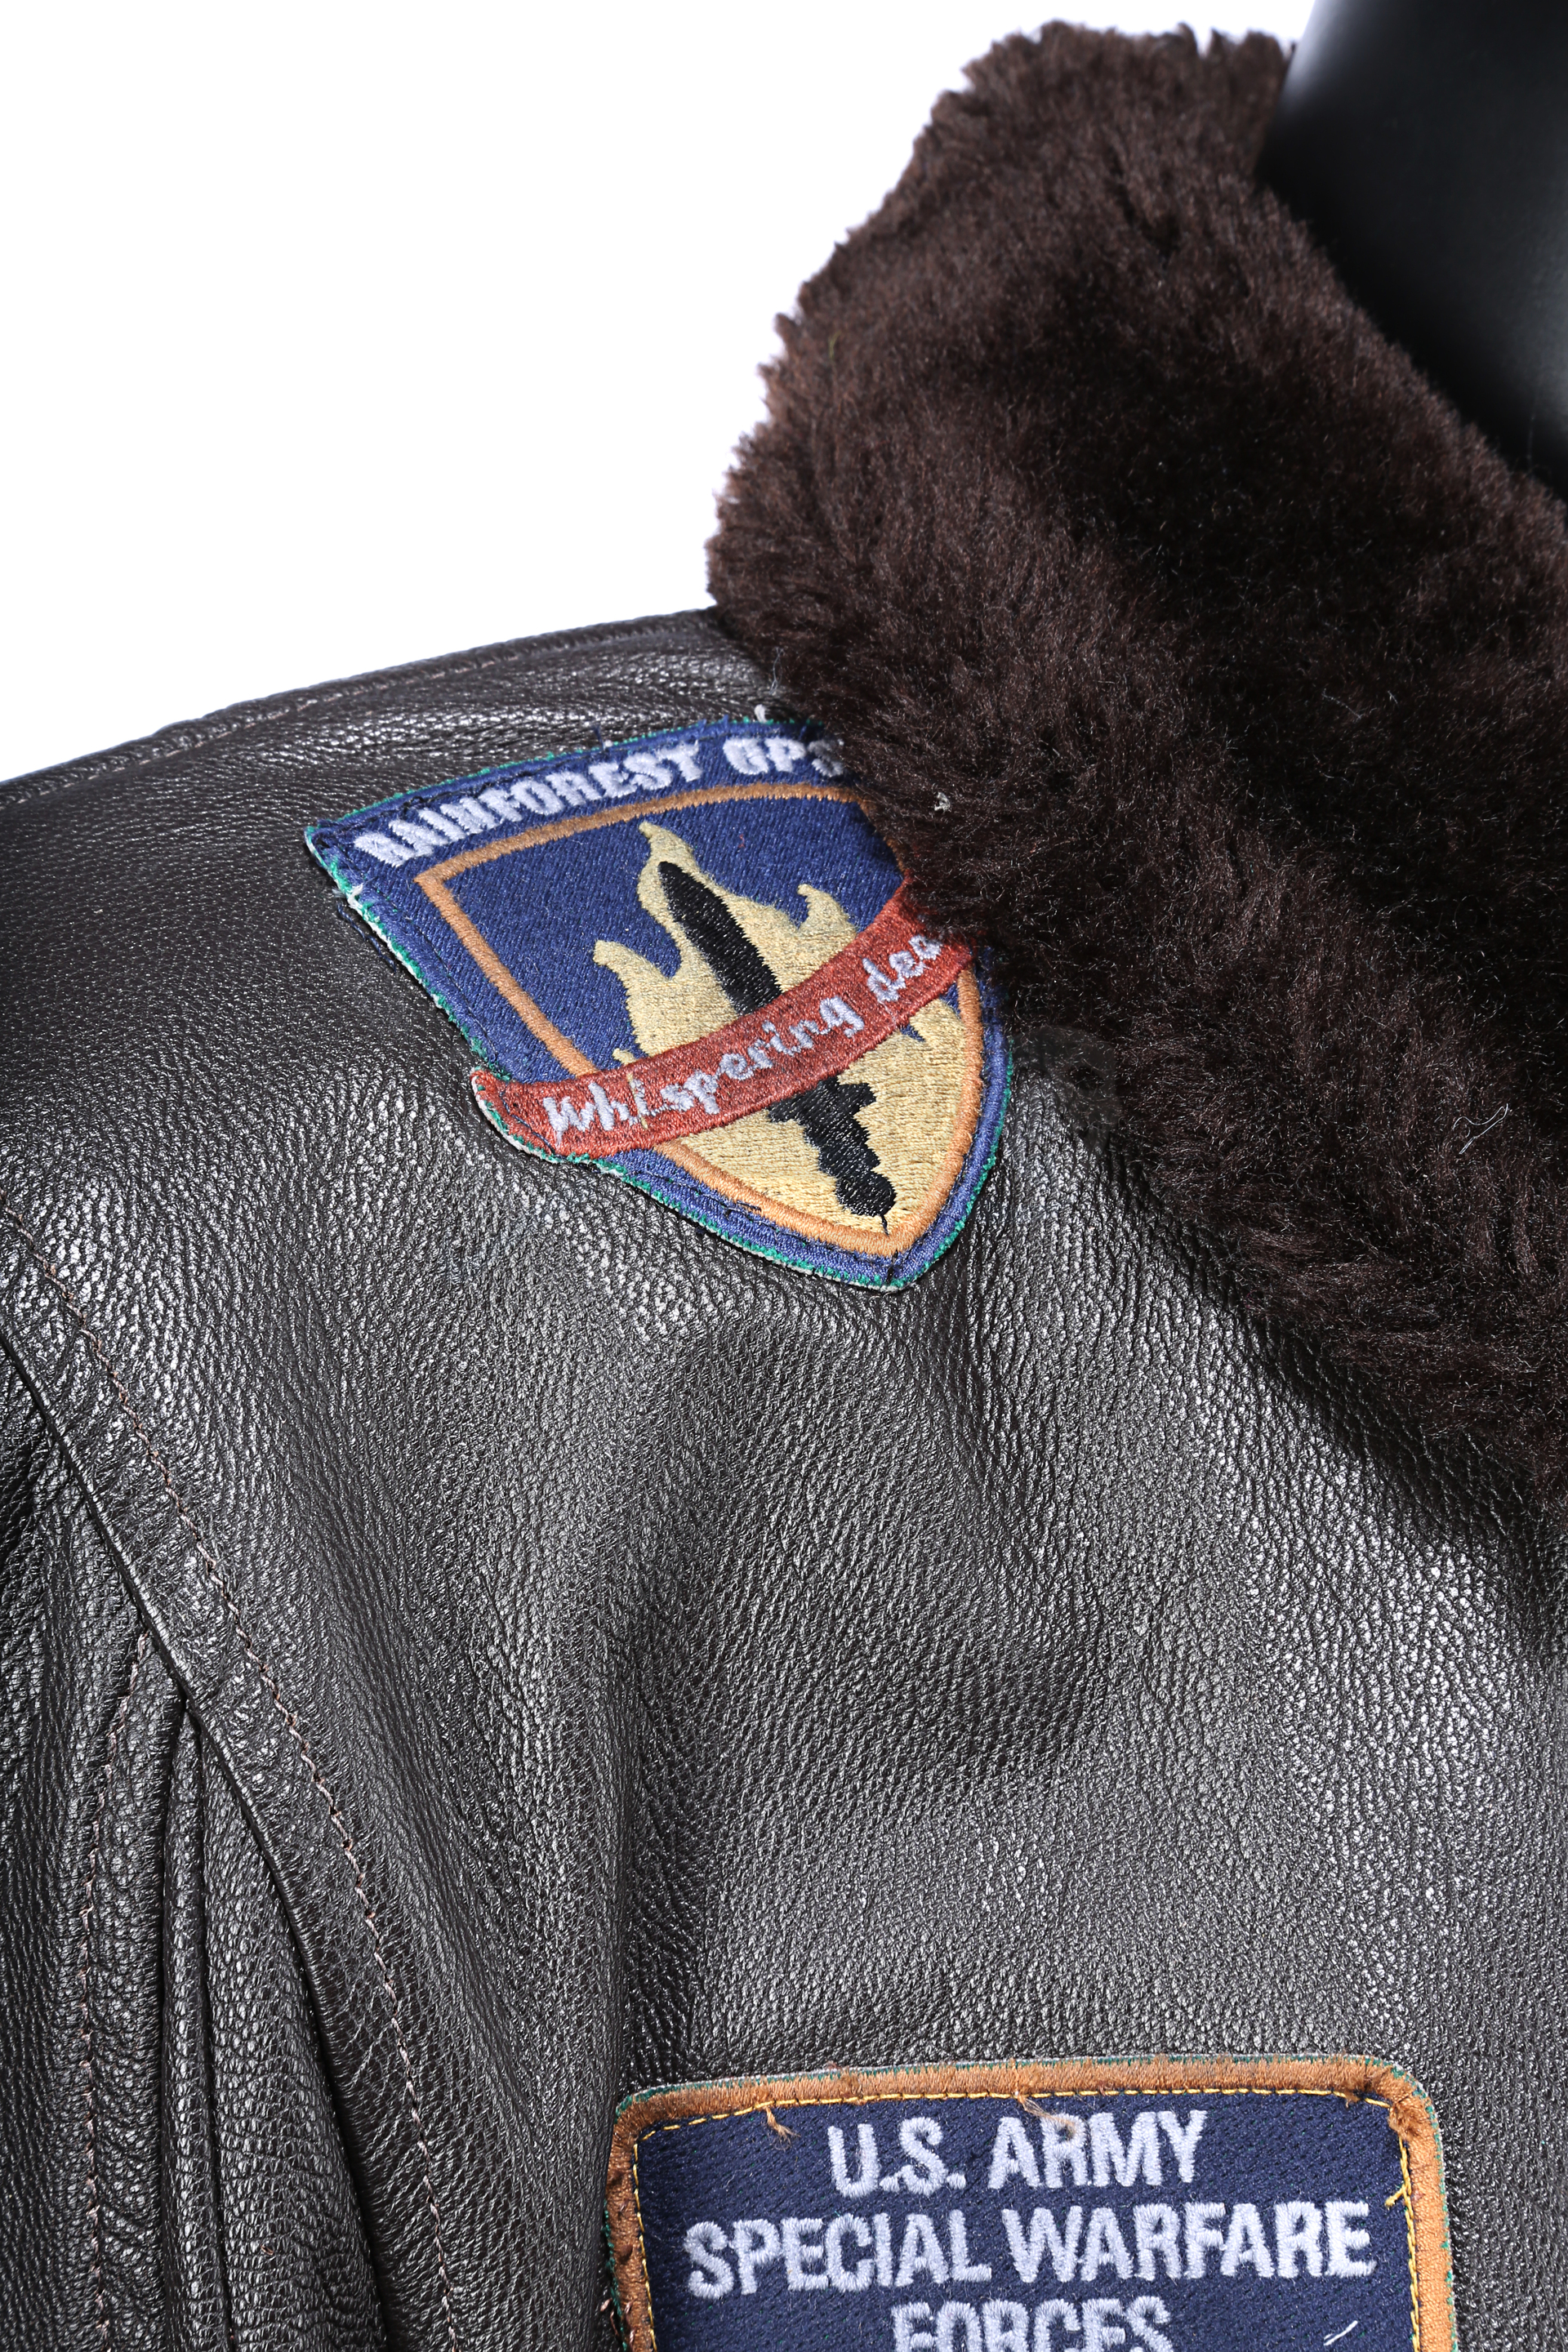 THE 6TH DAY (2000) - Adam Gibson's (Arnold Schwarzenegger) Leather Jacket - Image 5 of 15